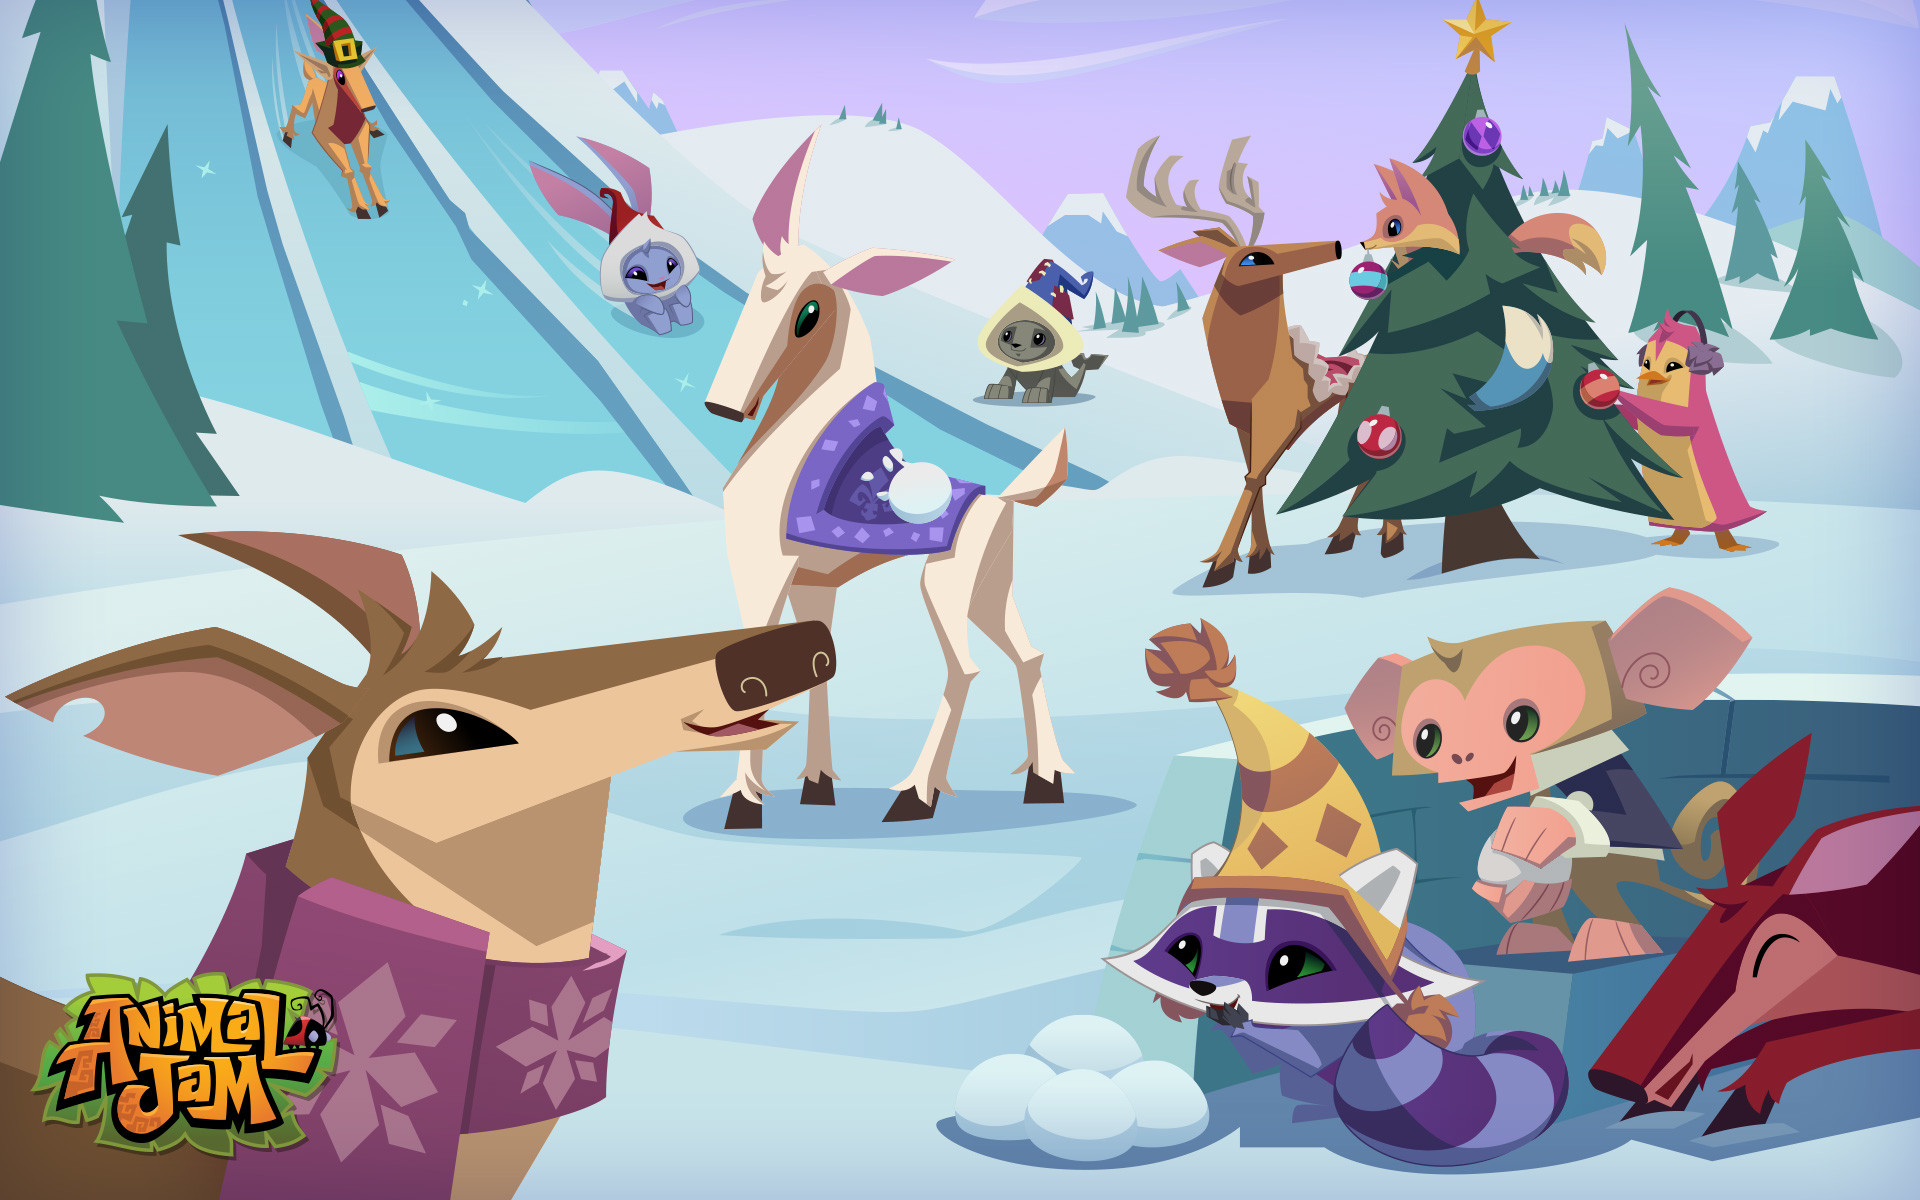 1920x1200 Free Animal Jam desktop wallpaper! For The Lastest Games At The Best Prices  Try Here multicitygames.com | :D Animal Jam | Pinterest | Animal jam, ...